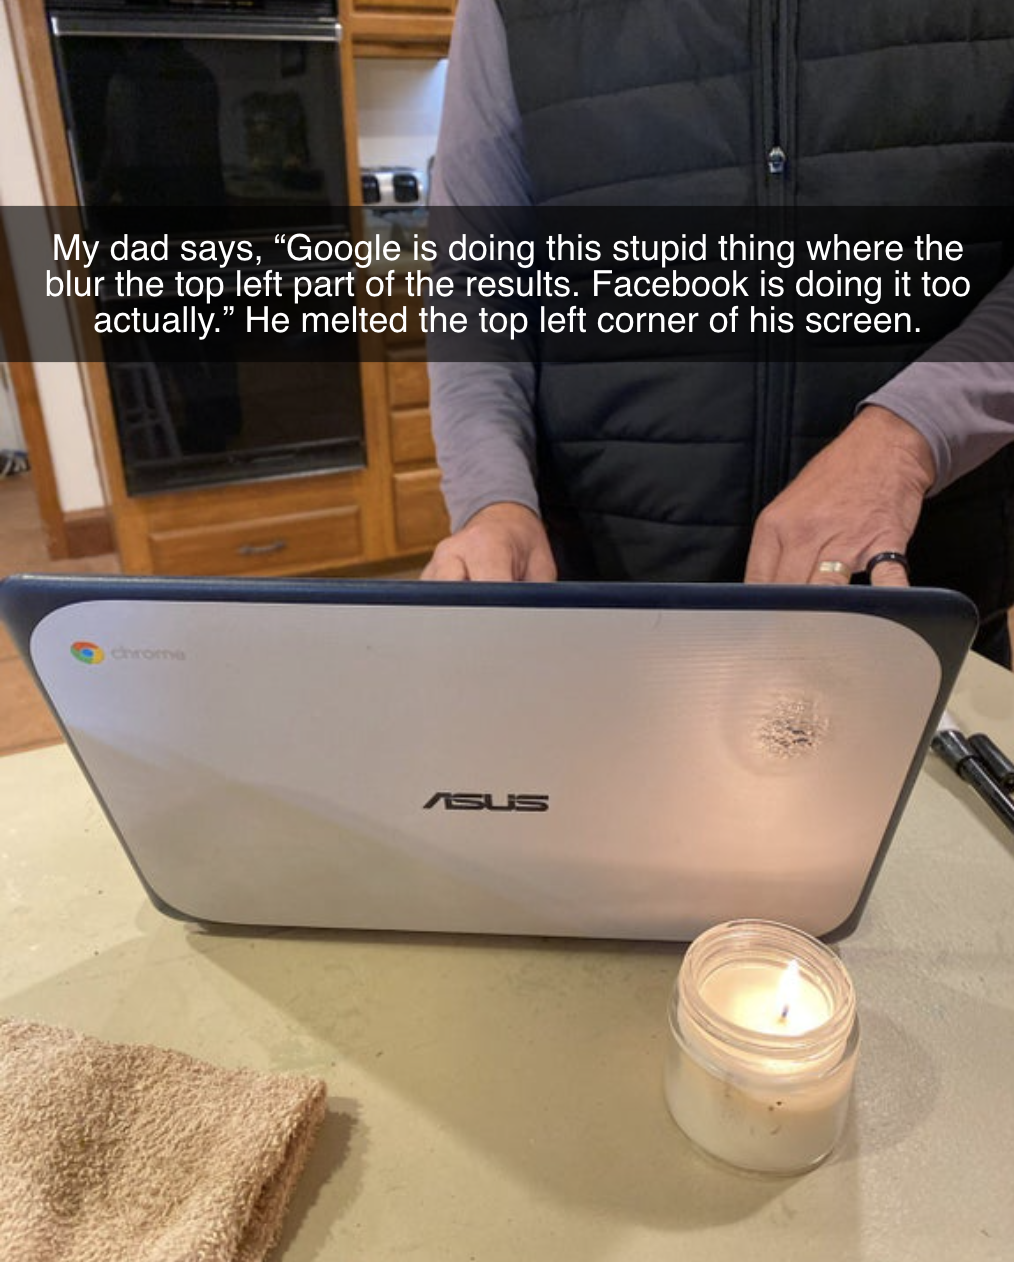 computer next to a candle and there's a burn mark near the candle